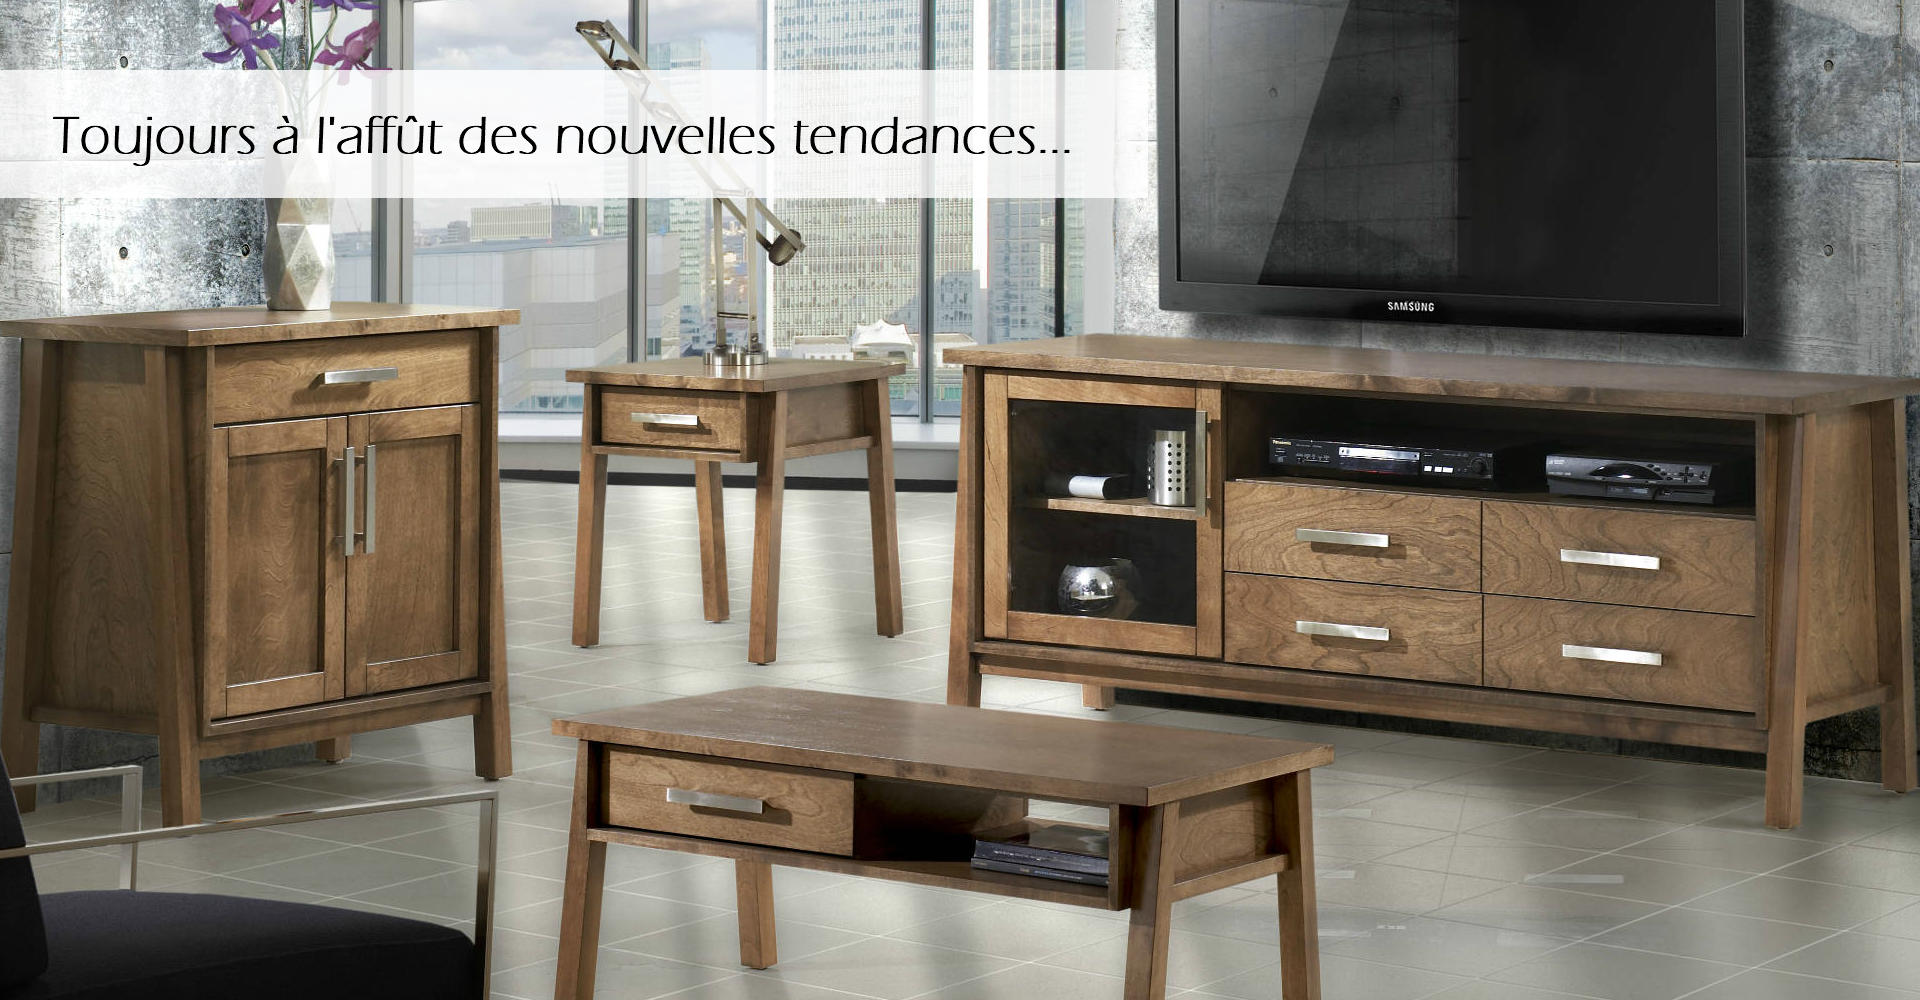 accueil b nisterie concept plus fabricant de meuble au qu bec. Black Bedroom Furniture Sets. Home Design Ideas